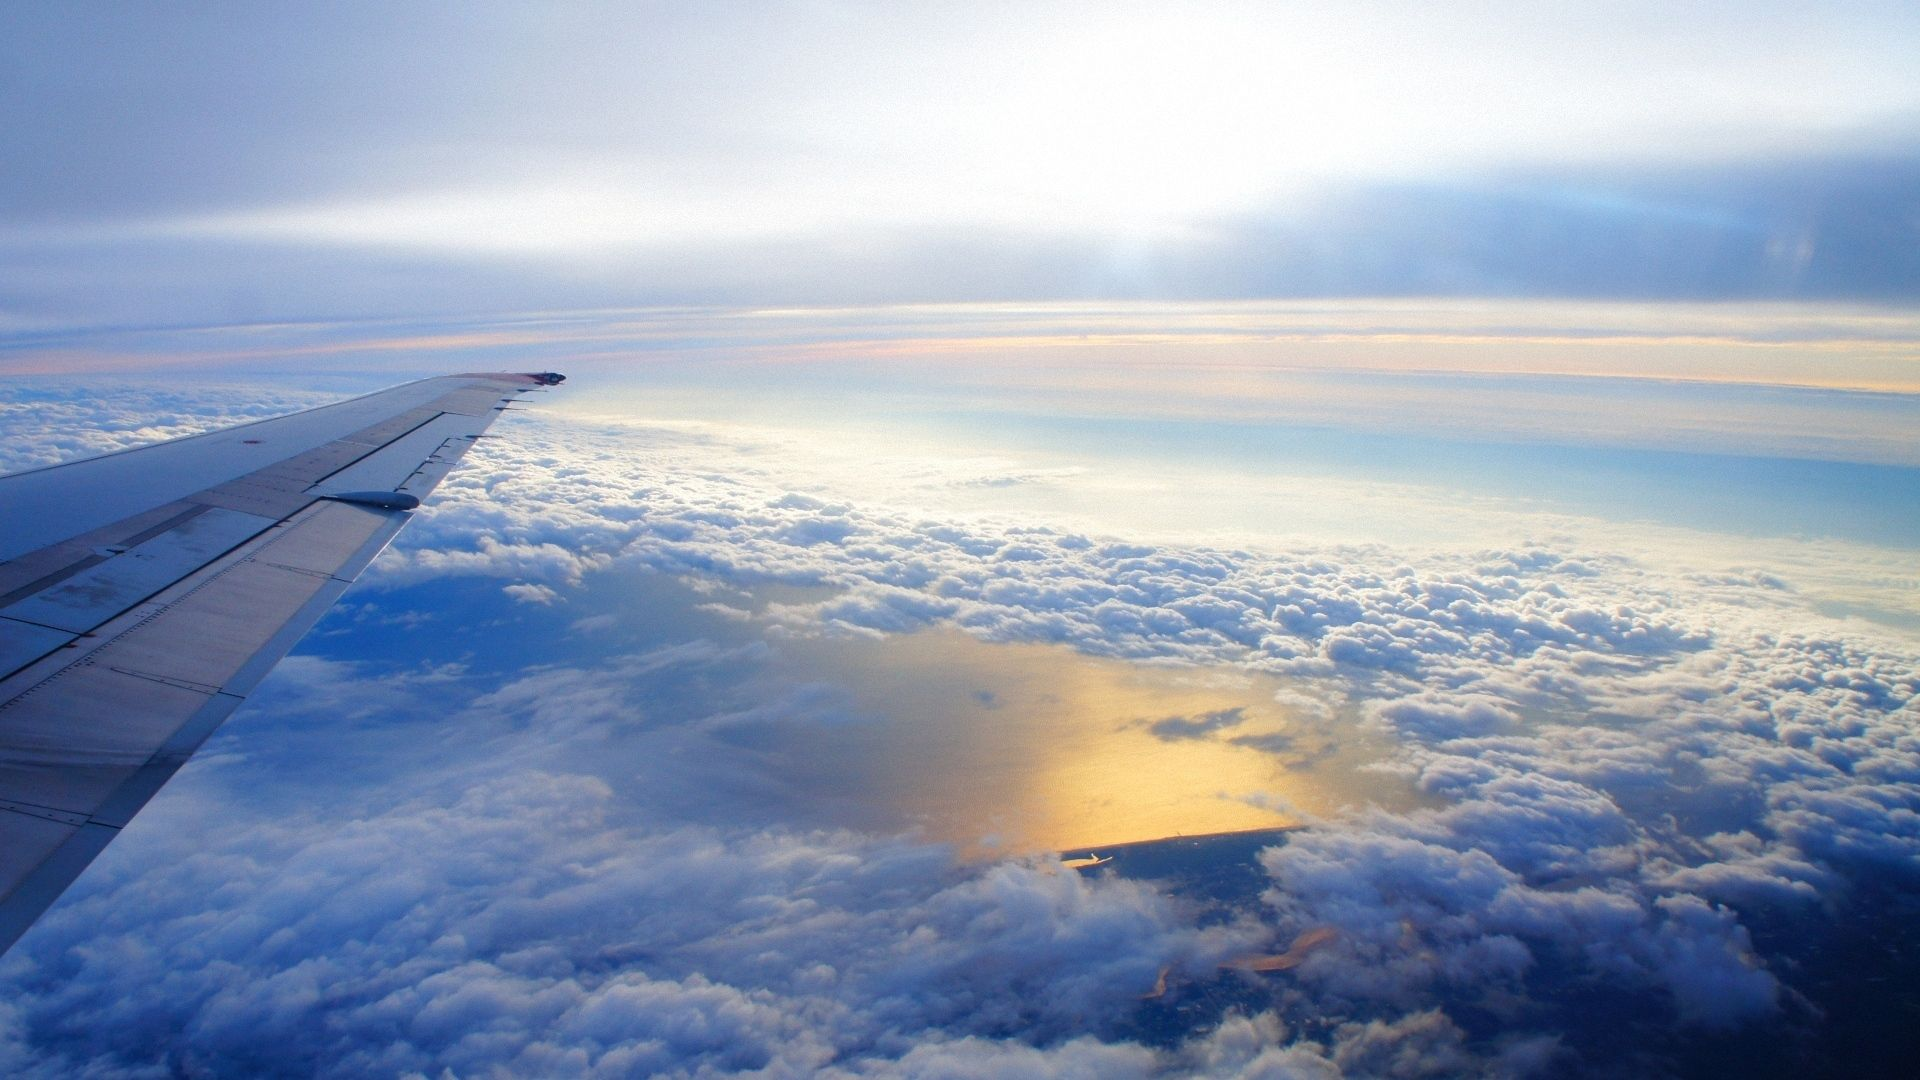 aircraft images in clouds wallpaper - photo #25